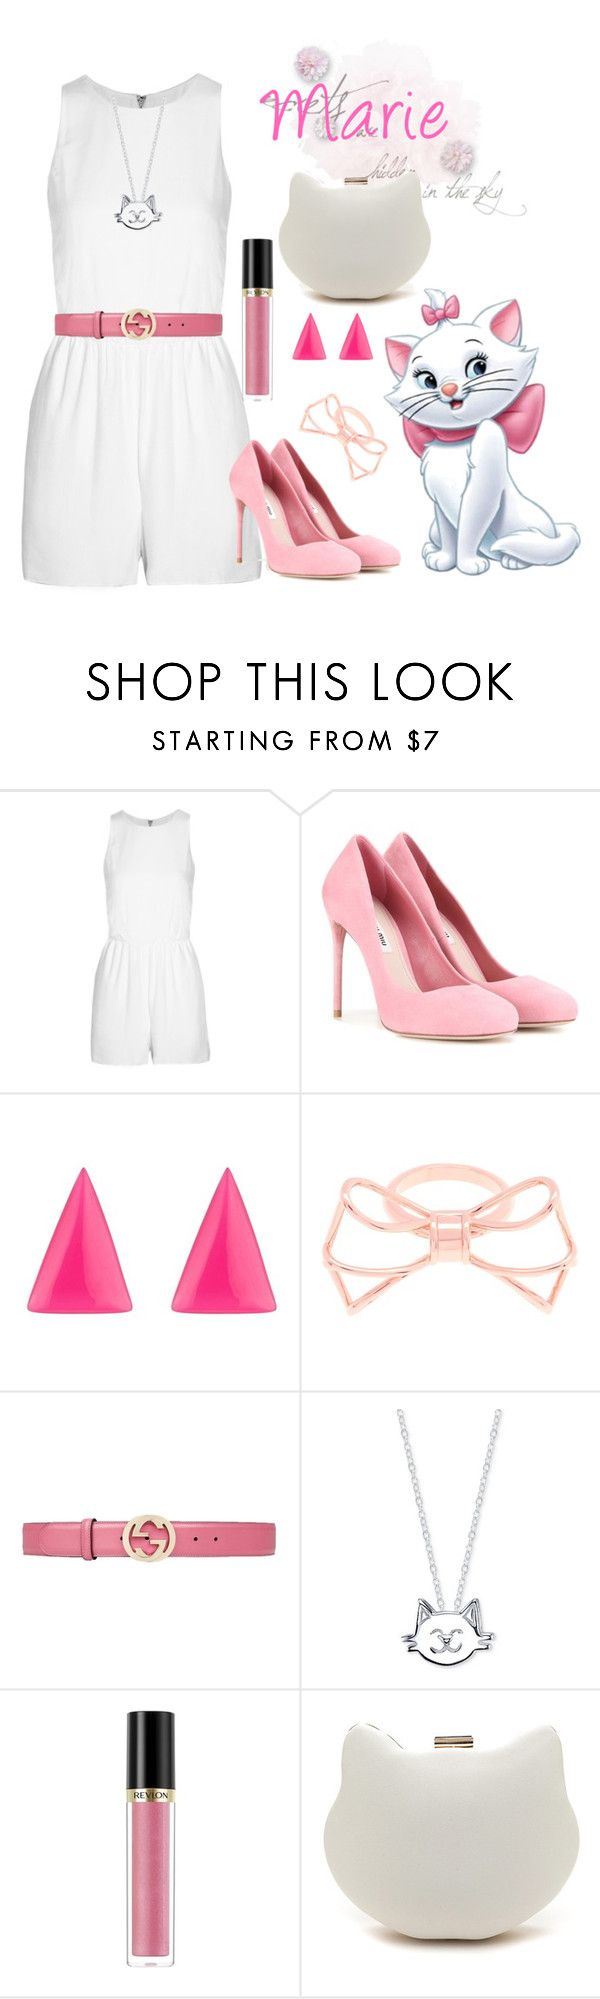 """""""Marie"""" by jmn312 ❤ liked on Polyvore featuring Alice + Olivia, Miu Miu, Alexis Bittar, Ted Baker, Gucci, Unwritten and Revlon"""